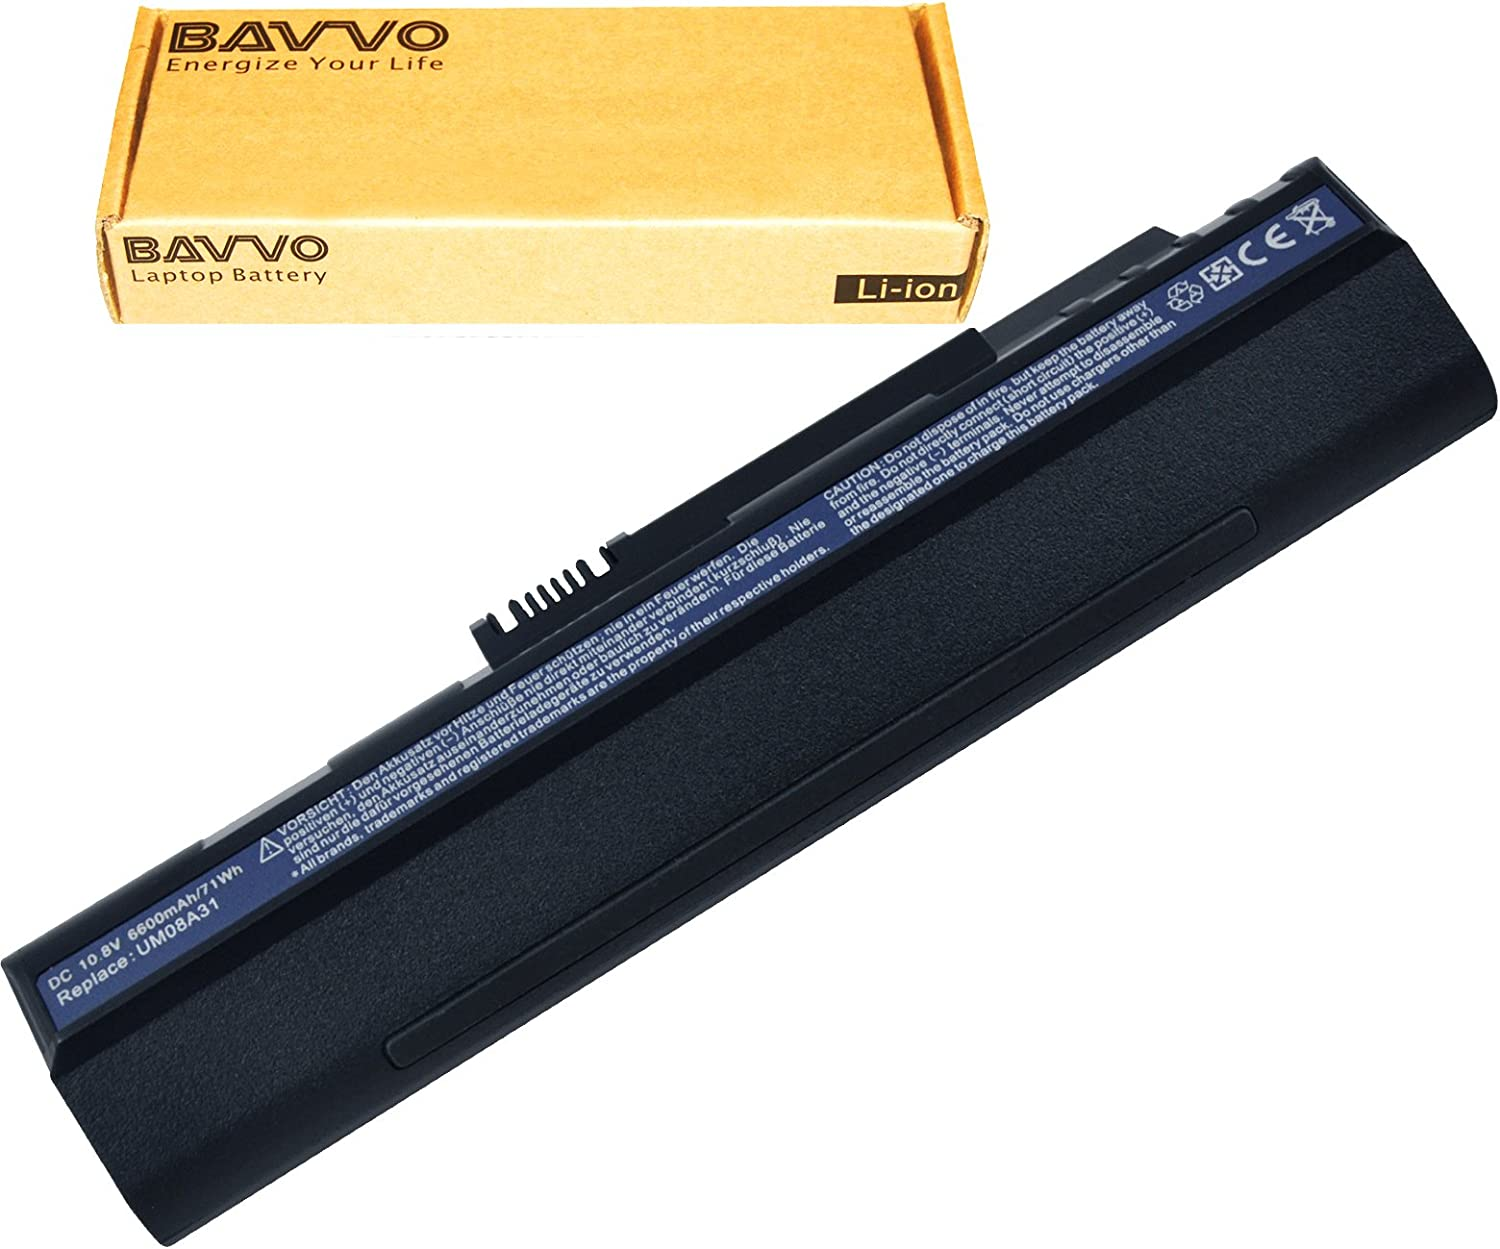 Bavvo 9-Cell Battery Compatible with ACER Aspire one D250-1325, Black